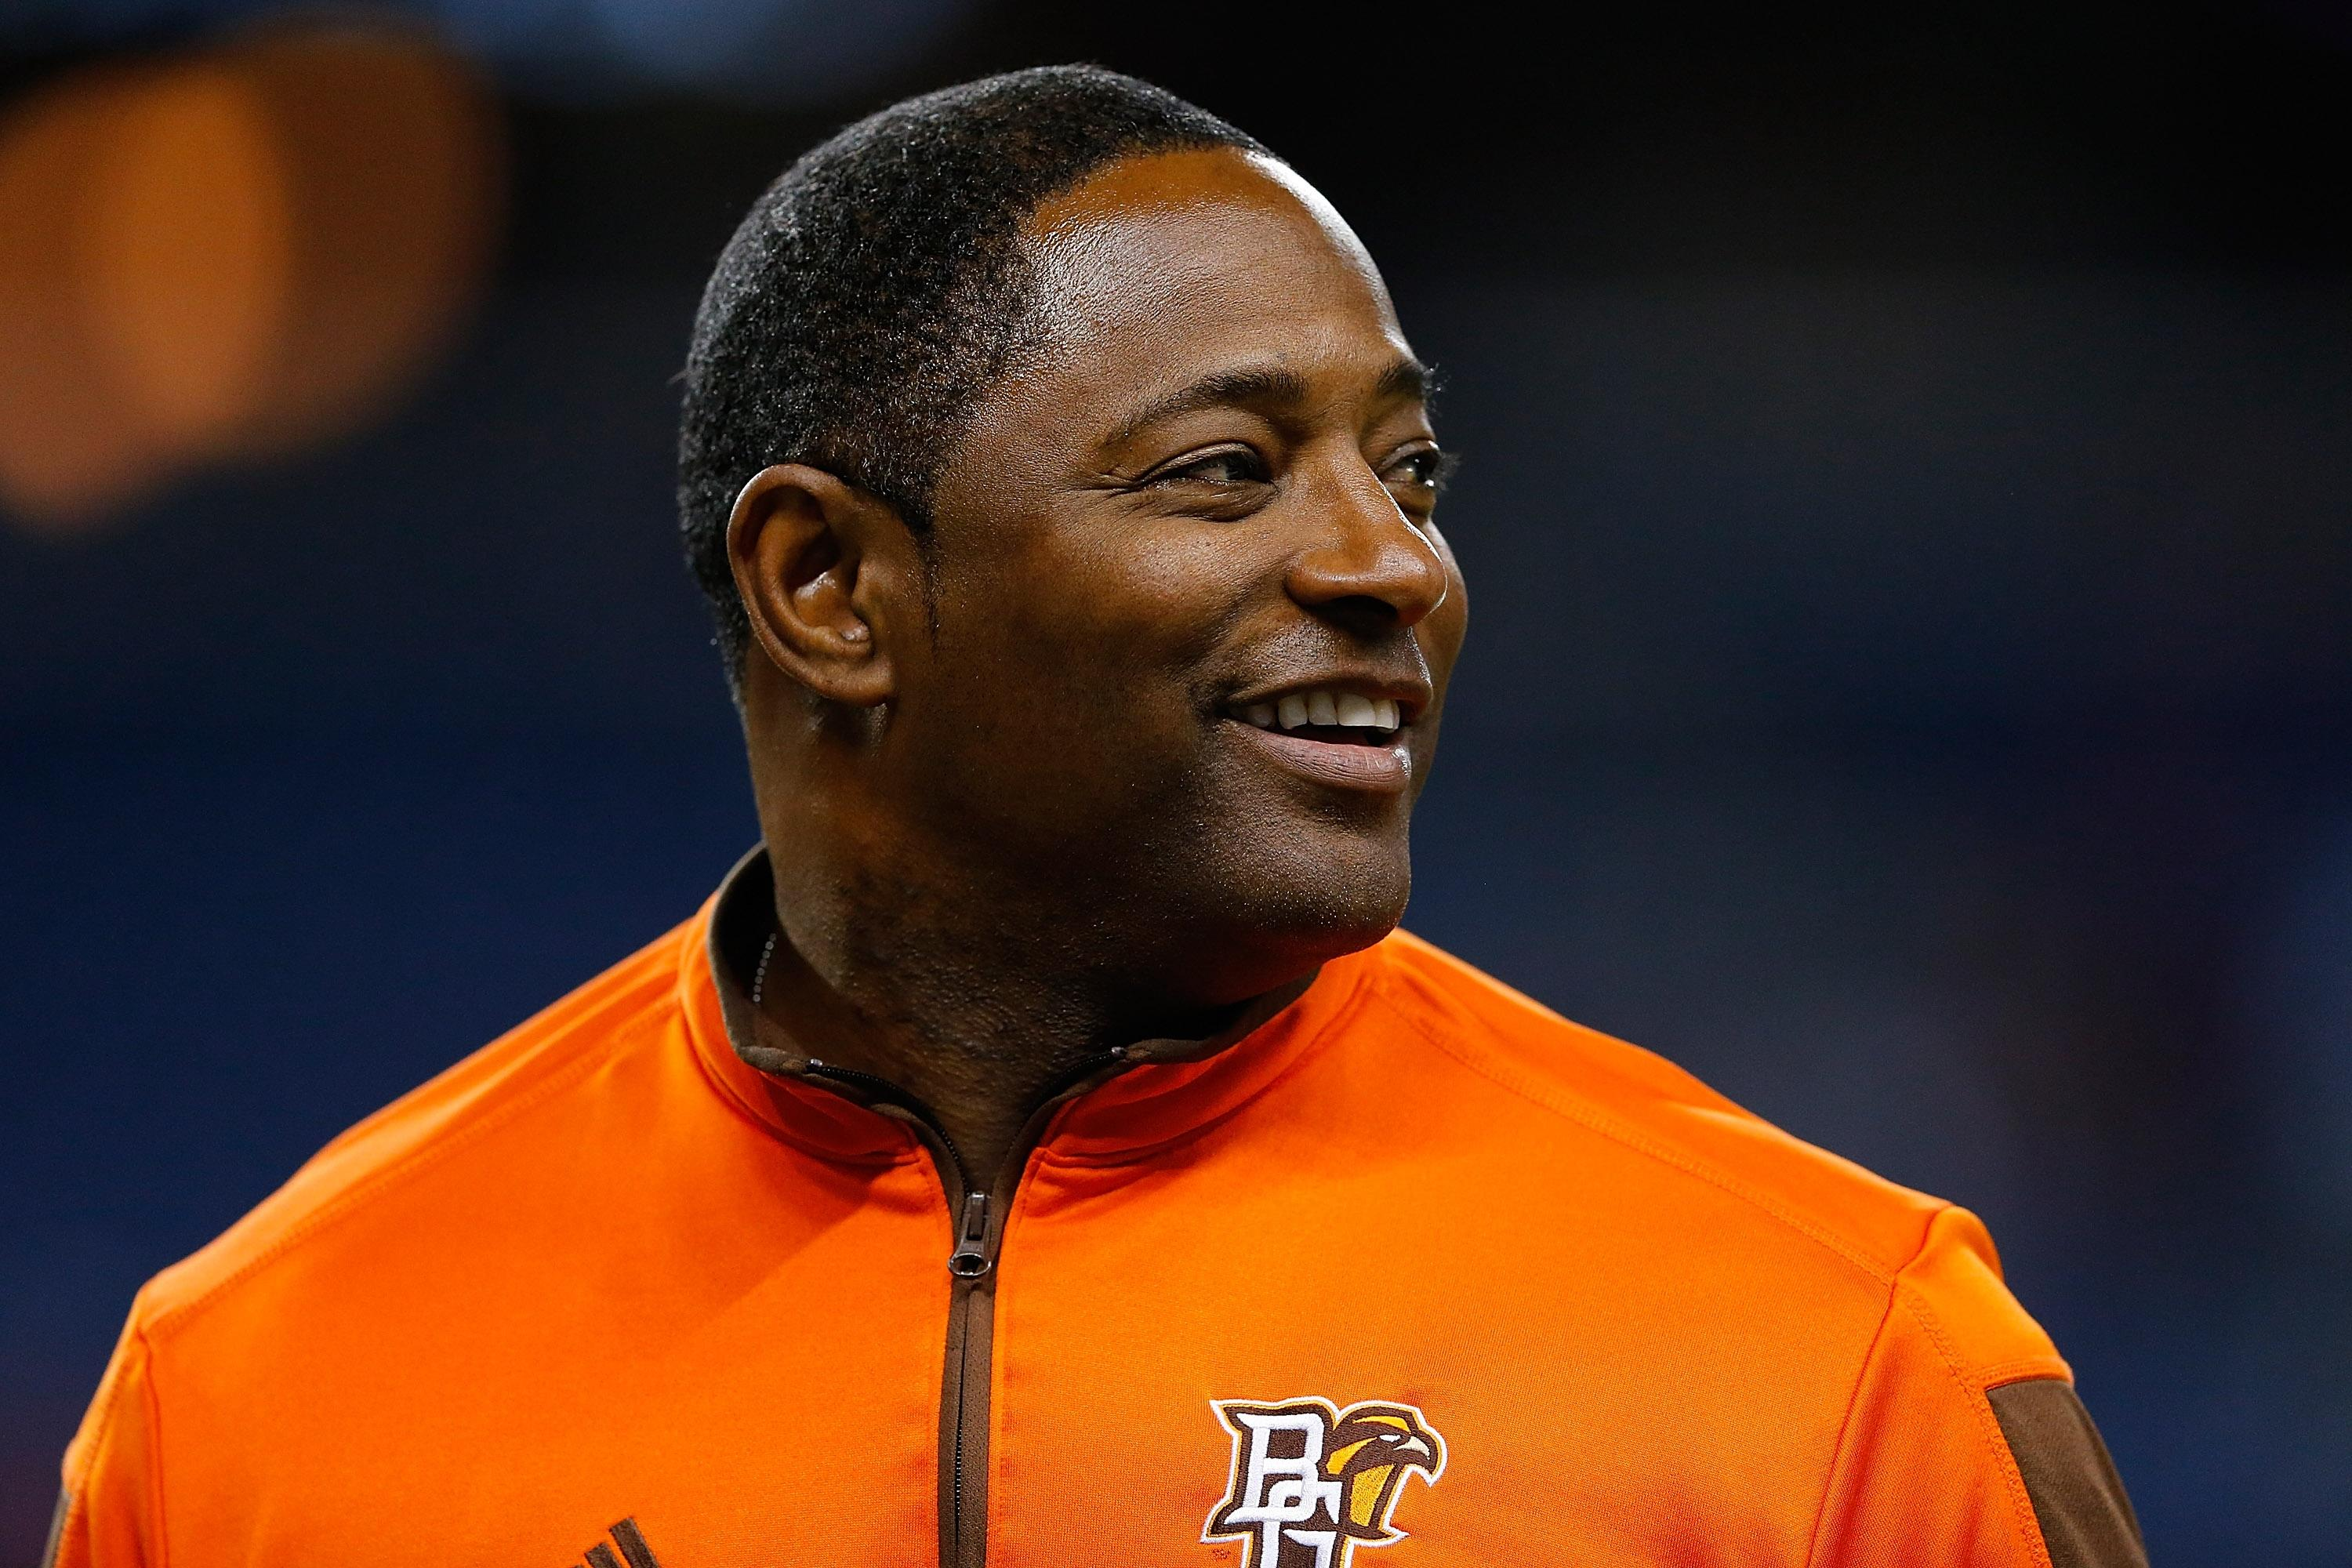 Bowling Green coach Dino Babers helped pull driver from burning vehicle